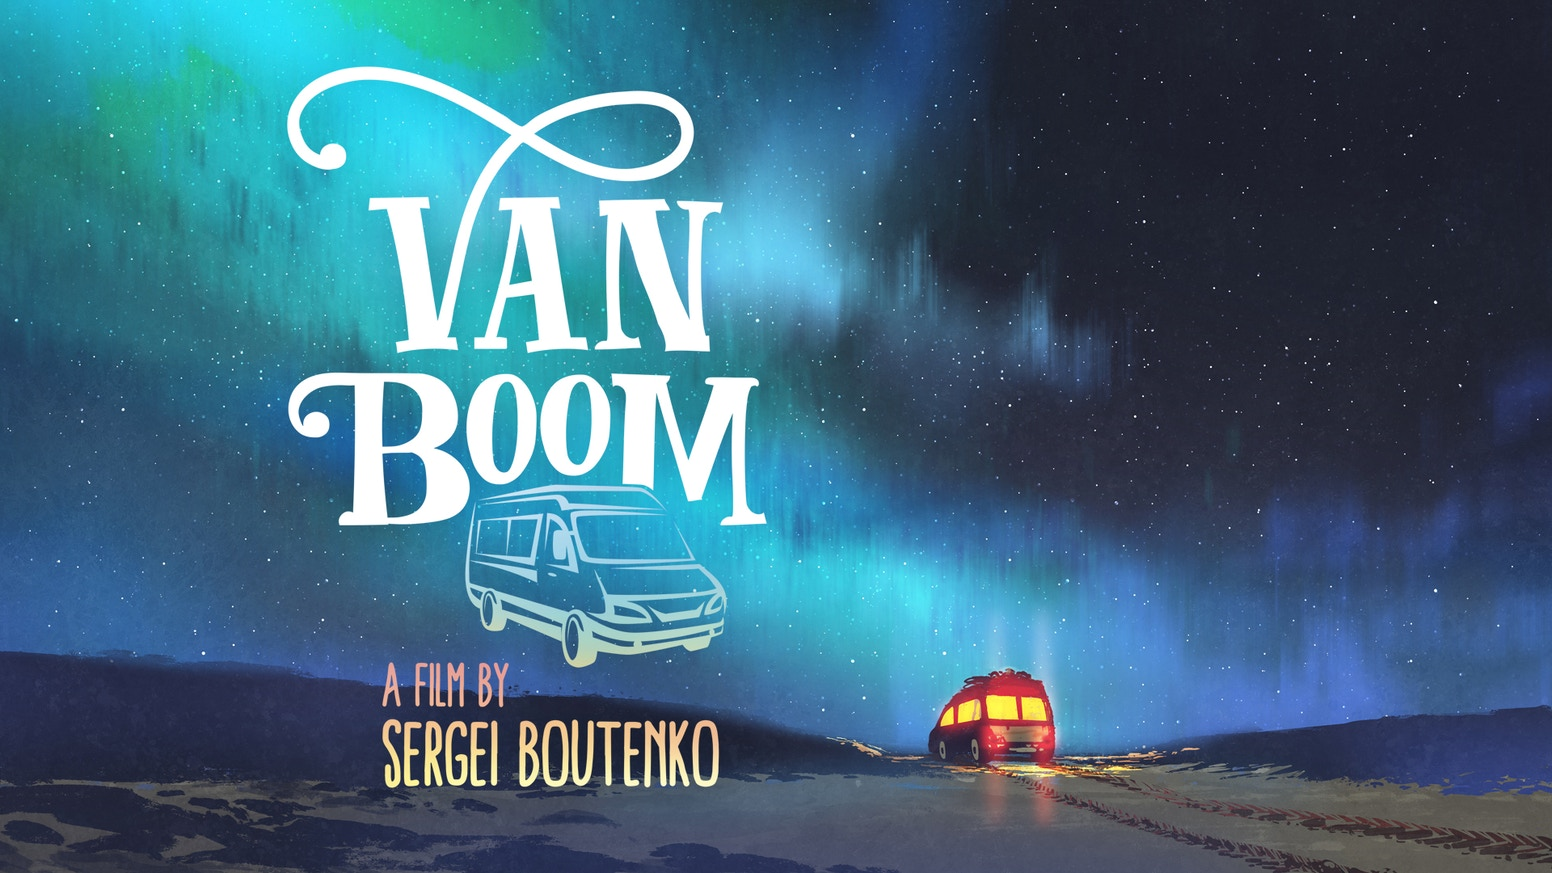 A documentary about modern vans, van life, digital nomads, and happiness.